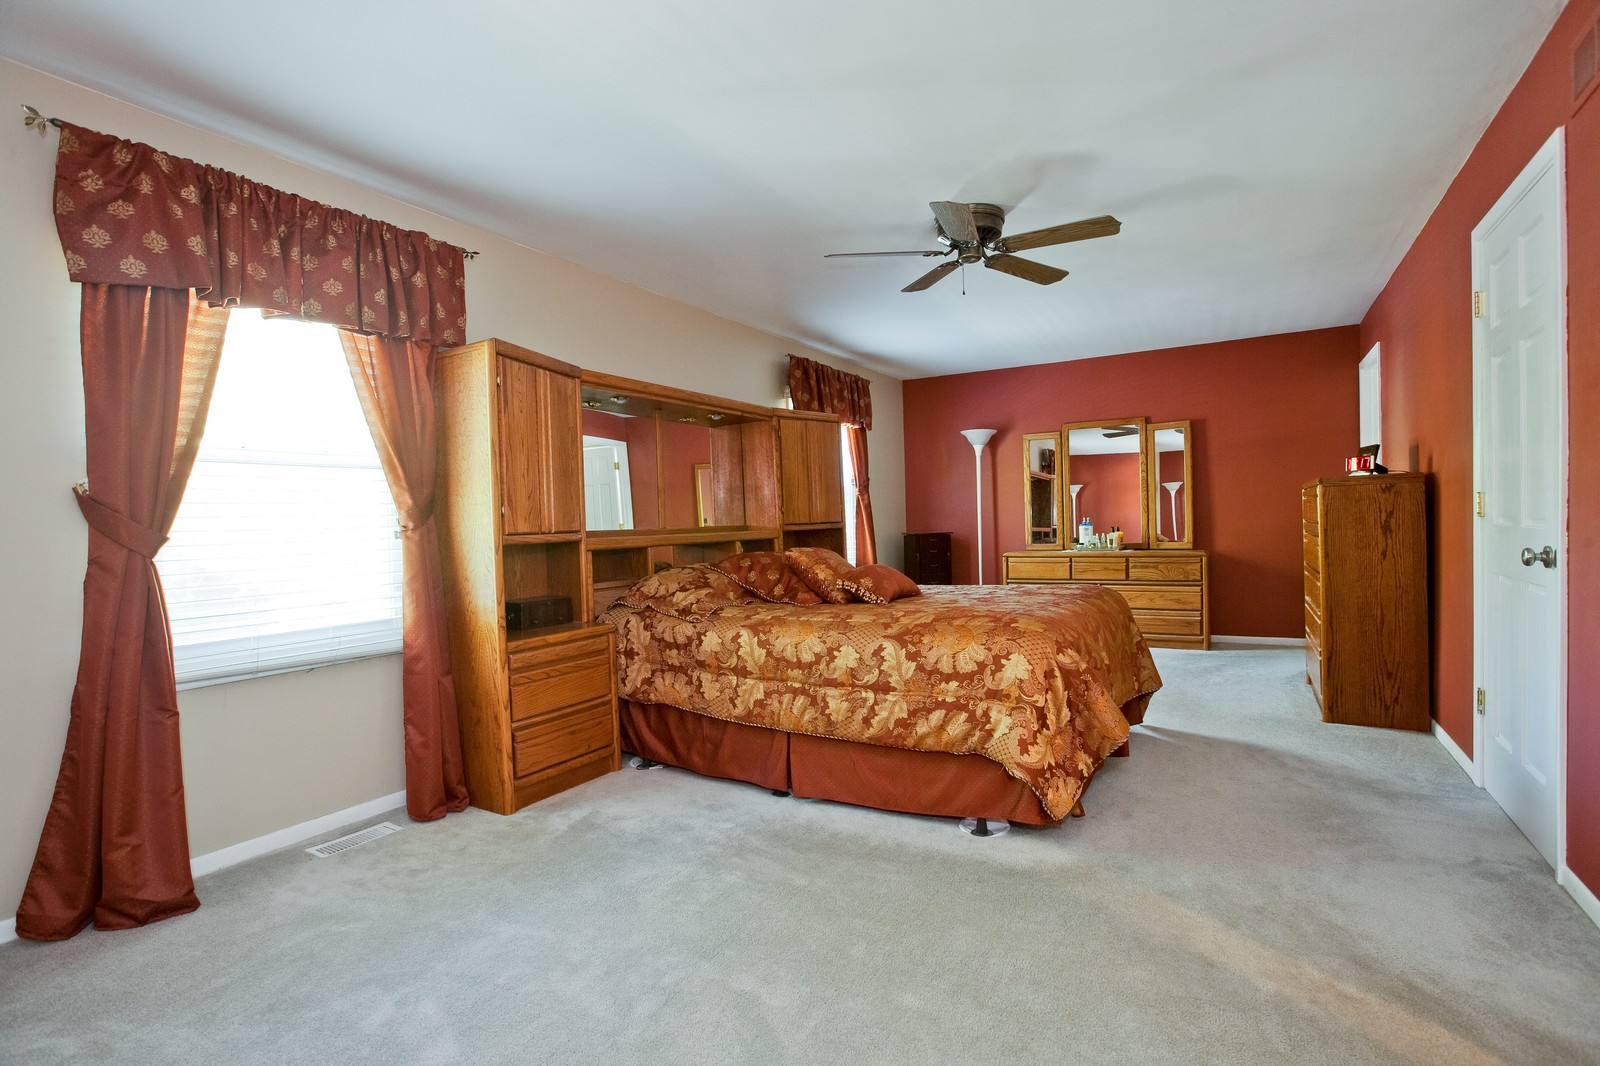 Real Estate Photography - 6511 Terrace, Downers Grove, IL, 60516 - Master Bedroom